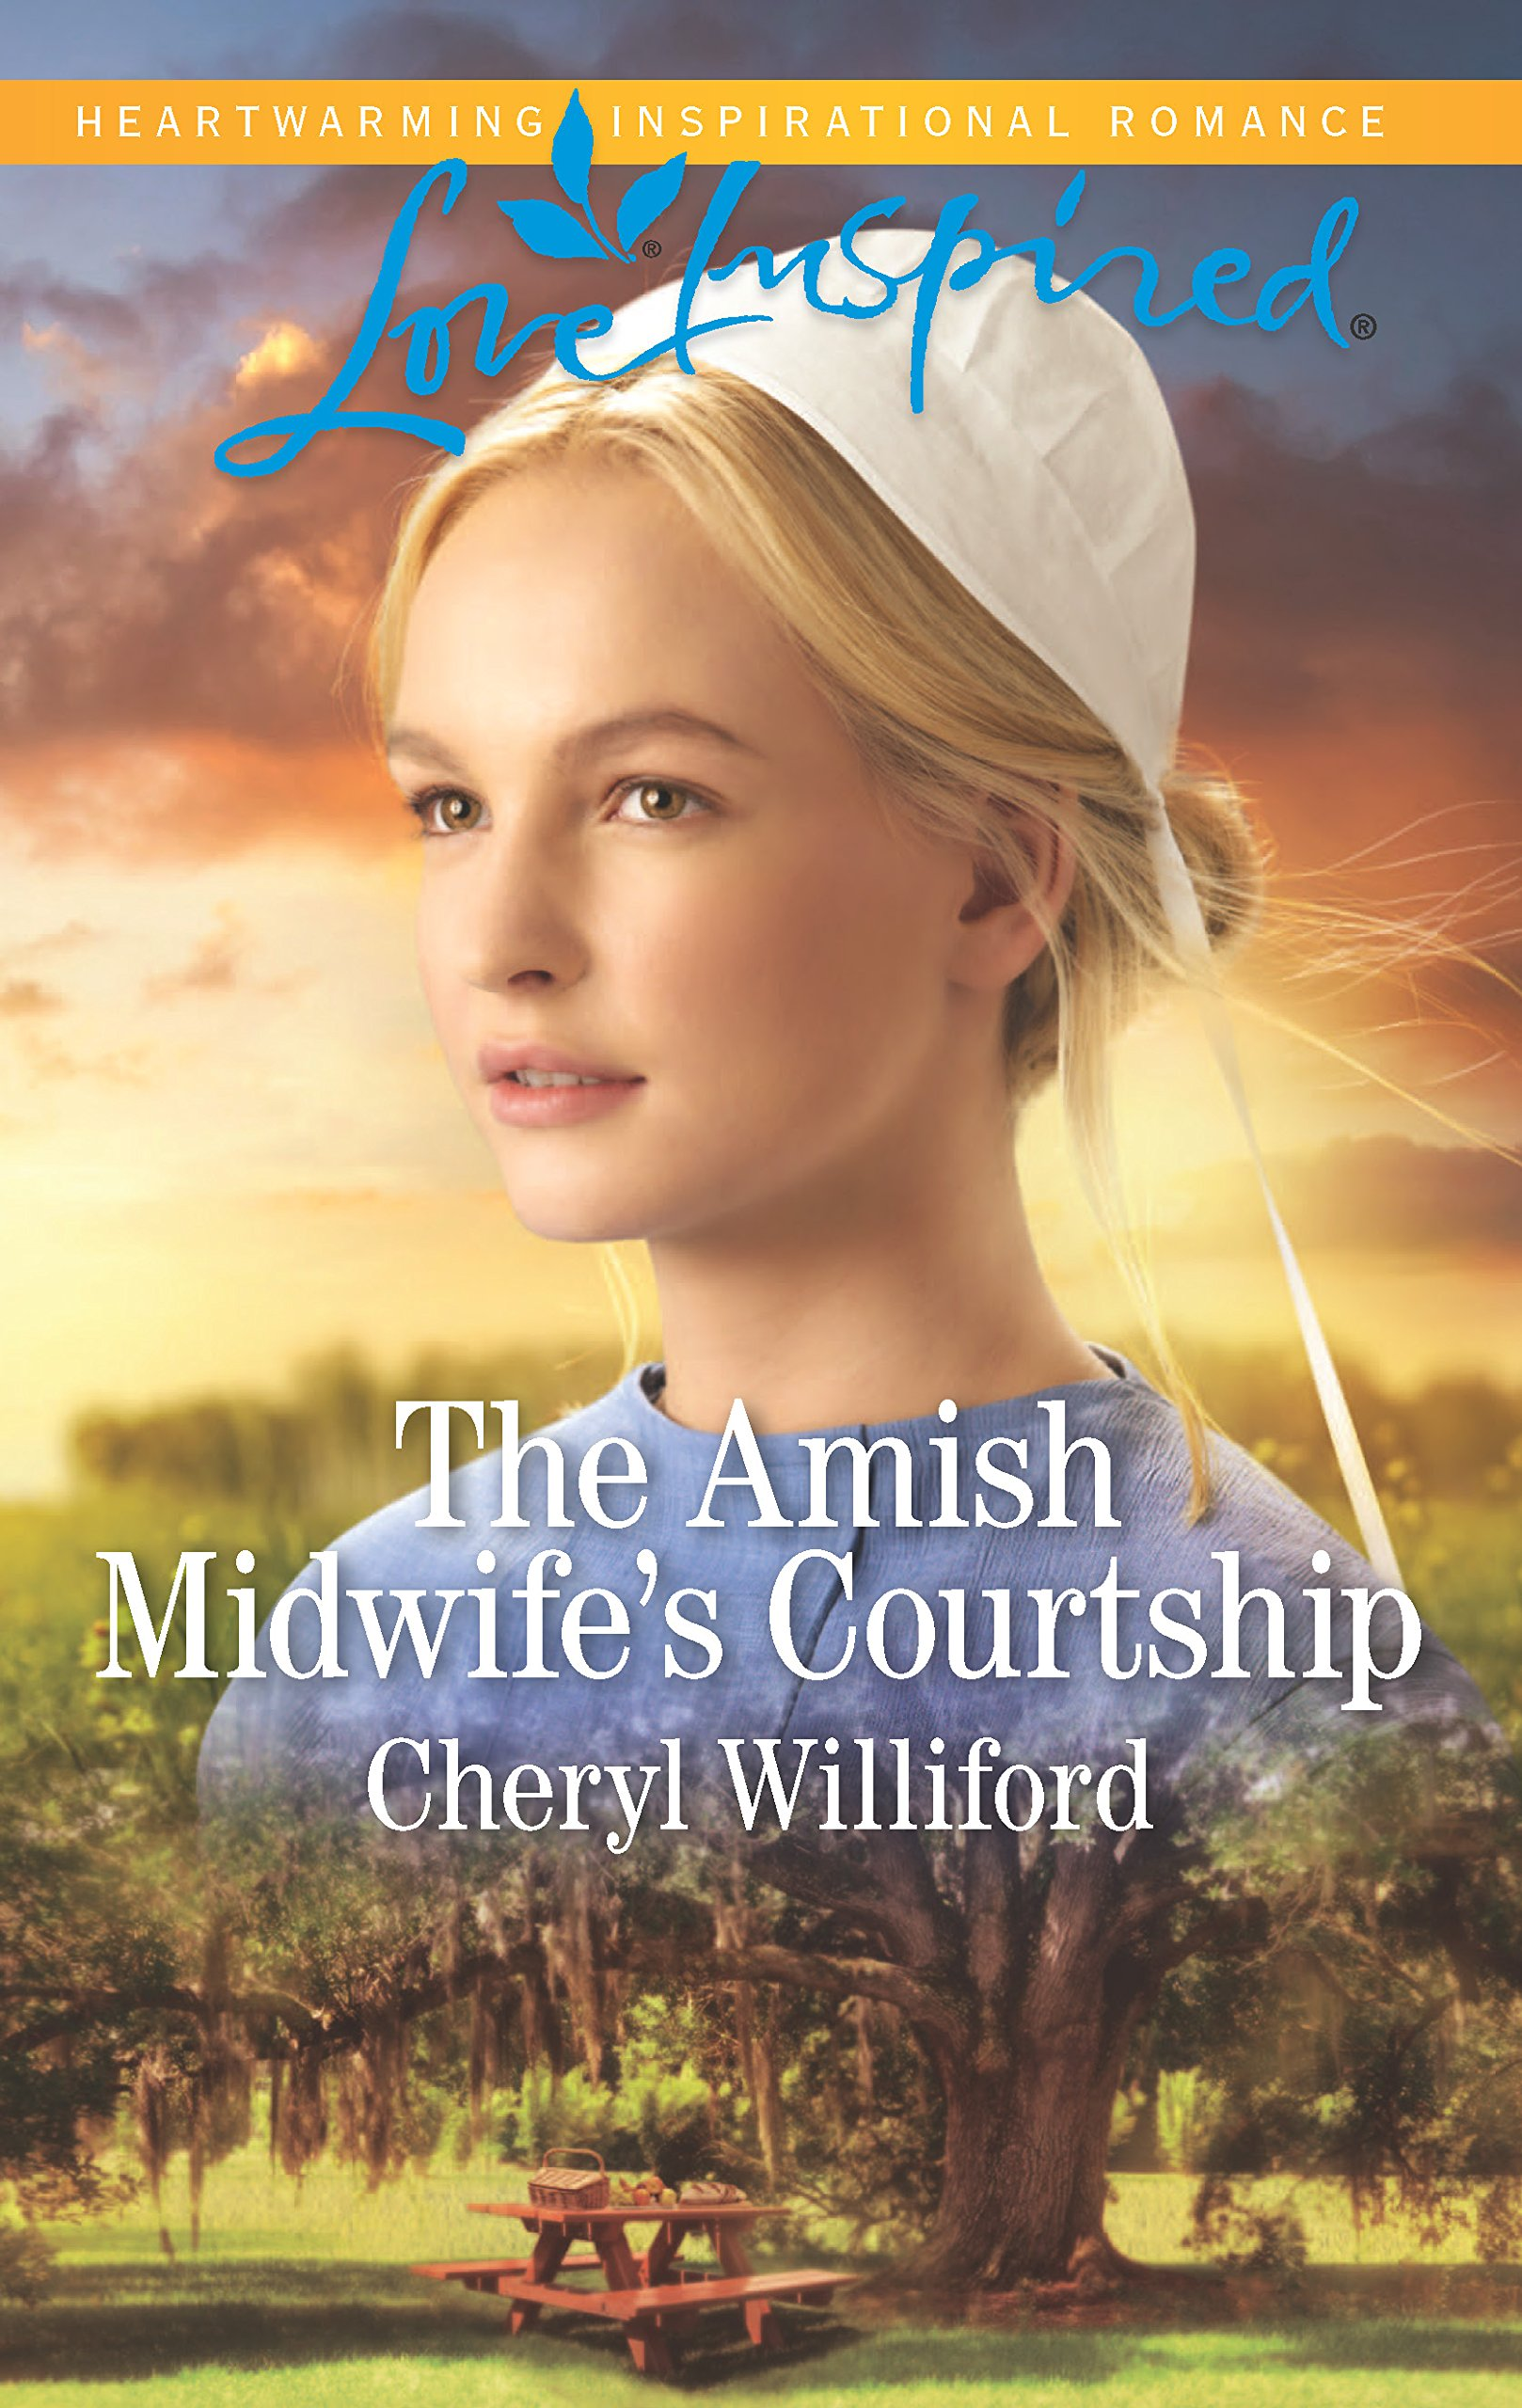 The Amish Midwife's Courtship (Love Inspired): Cheryl Williford:  9780373719587: Amazon.com: Books